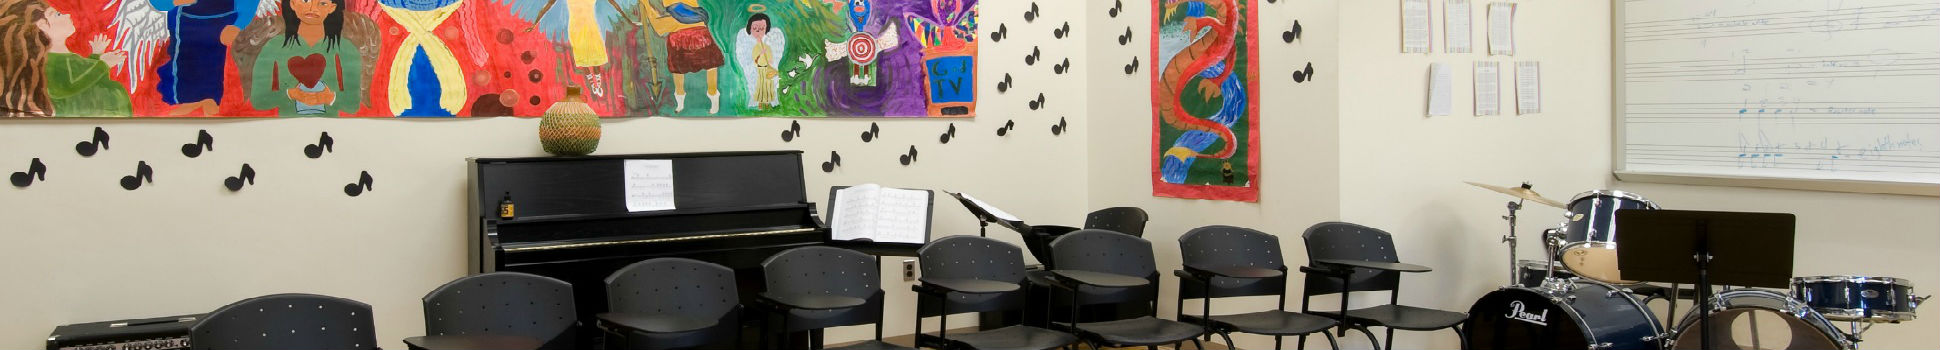 El Puente High School Music Room - Brooklyn